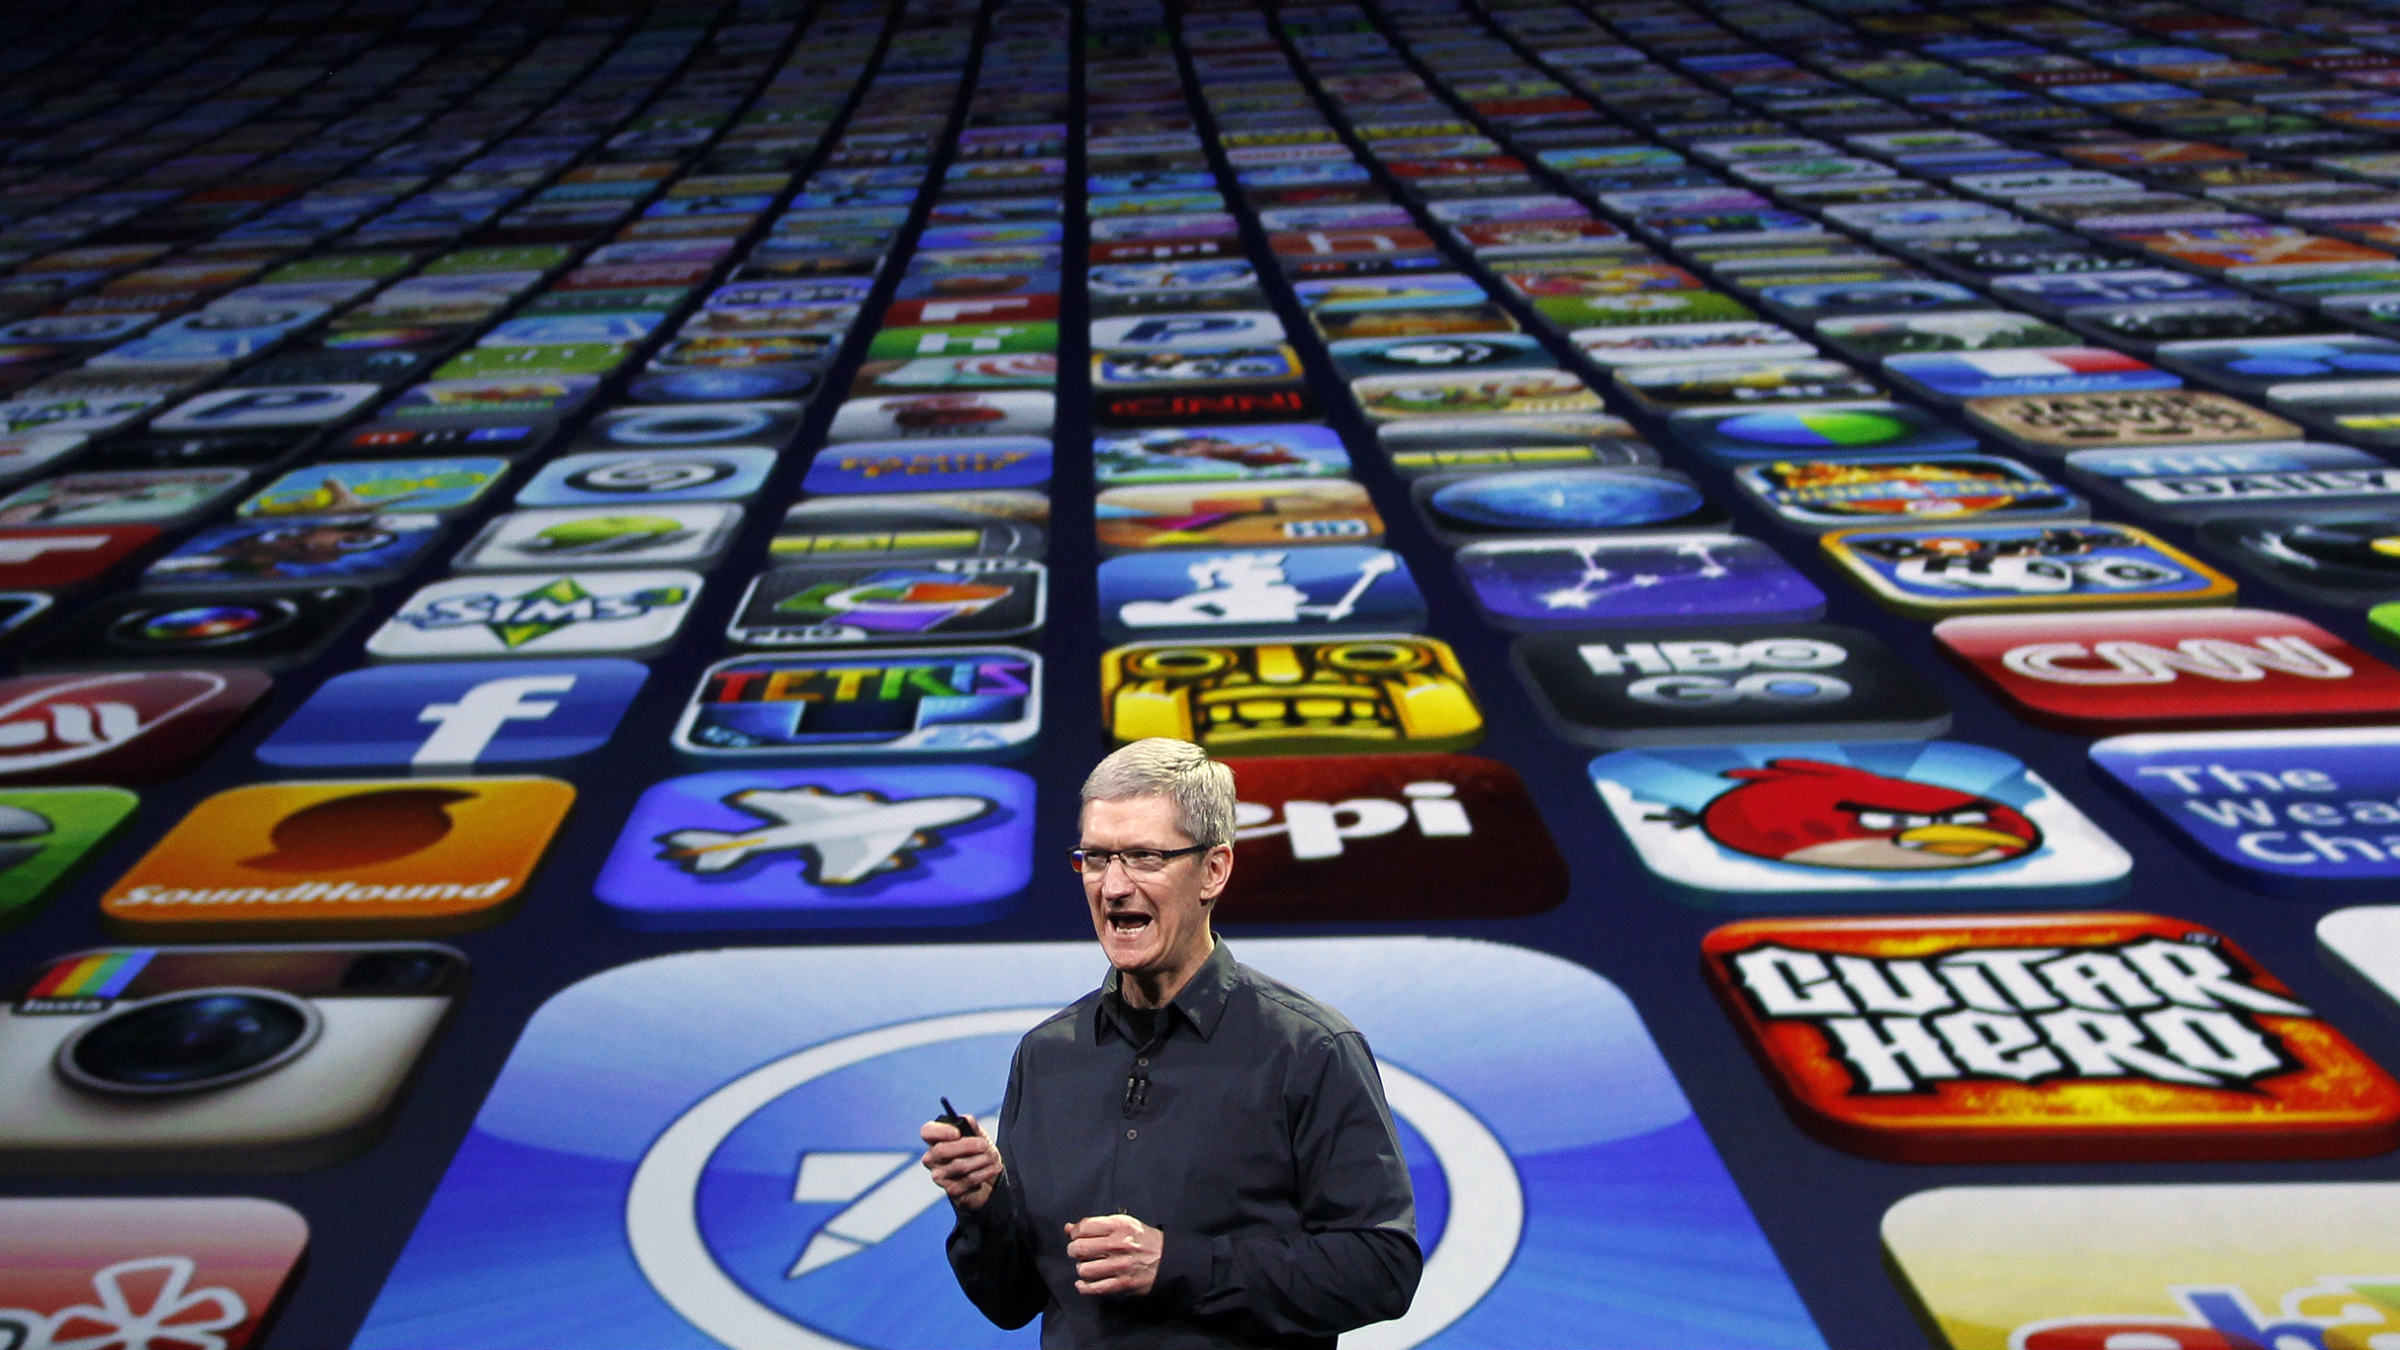 Apple CEO Tim Cook speaks about the number of Apps downloaded during an Apple event in San Francisco, California March 7, 2012. REUTERS/Robert Galbraith